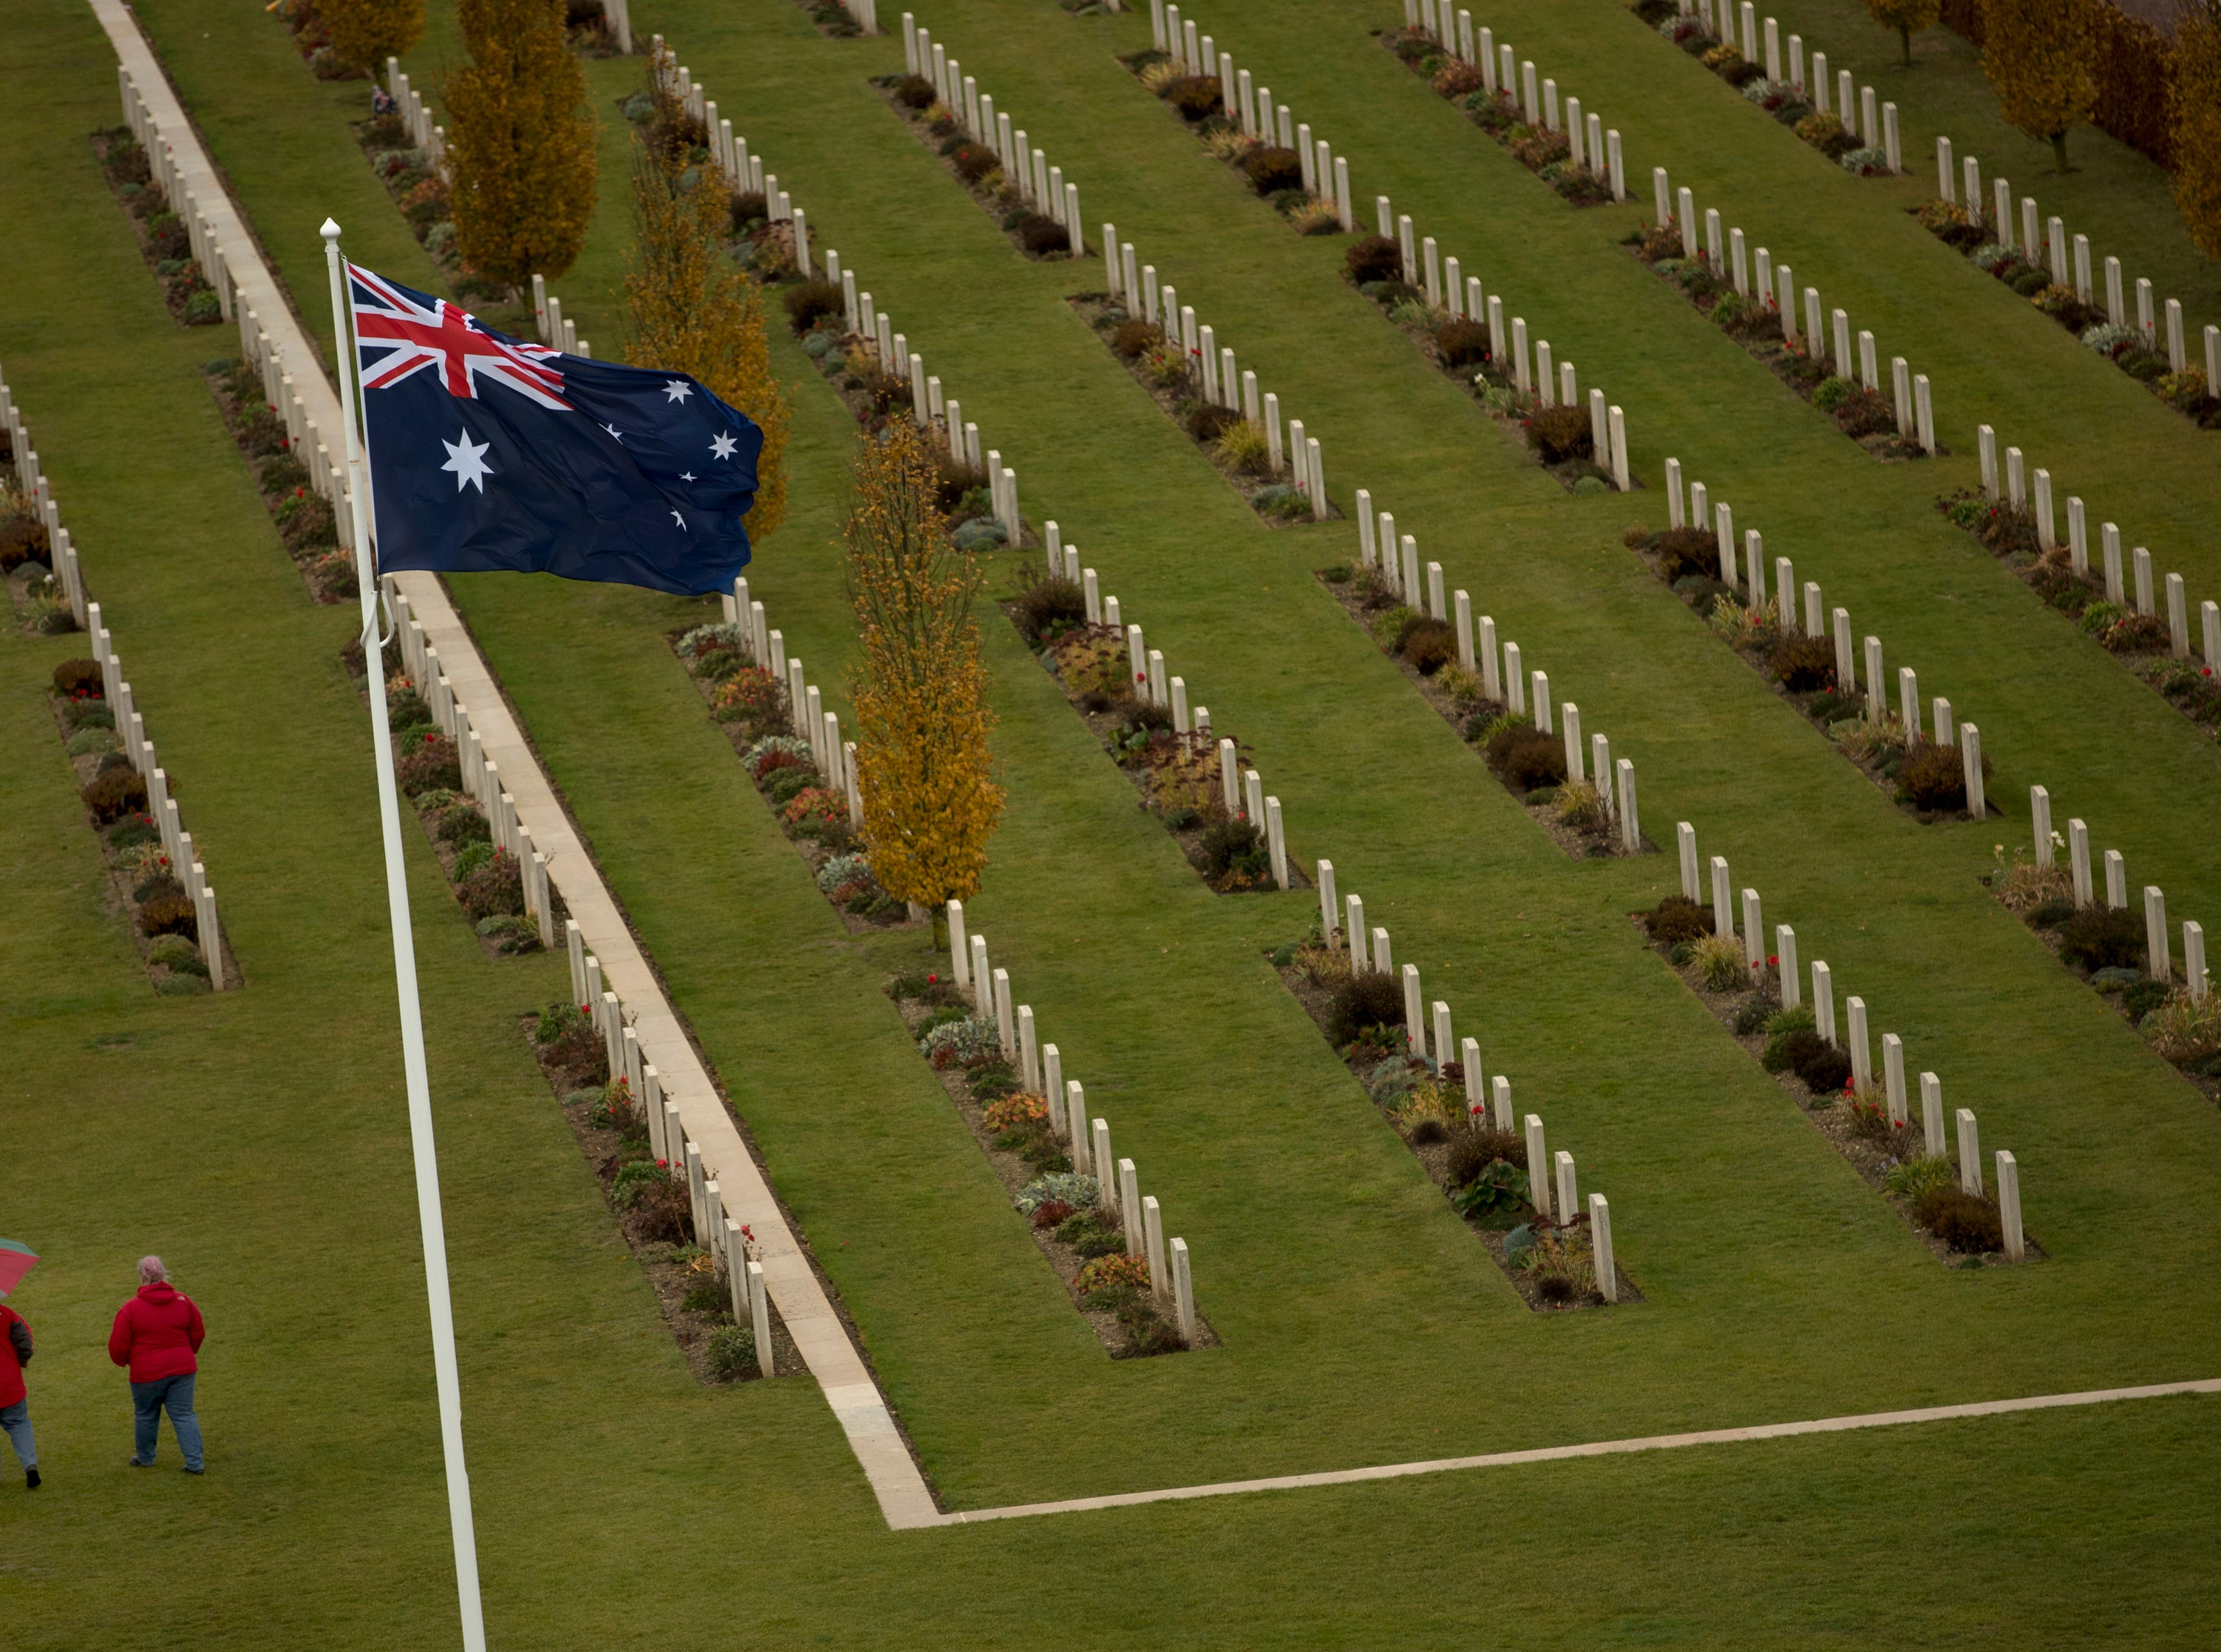 Two visitors walk among the headstones at the World War I Australian National Memorial in Villers-Bretonneux, France, Saturday, Nov. 10, 2018. The memorial walls at the site bear the names of 11,000 missing Australian soldiers who died in France during World War I.